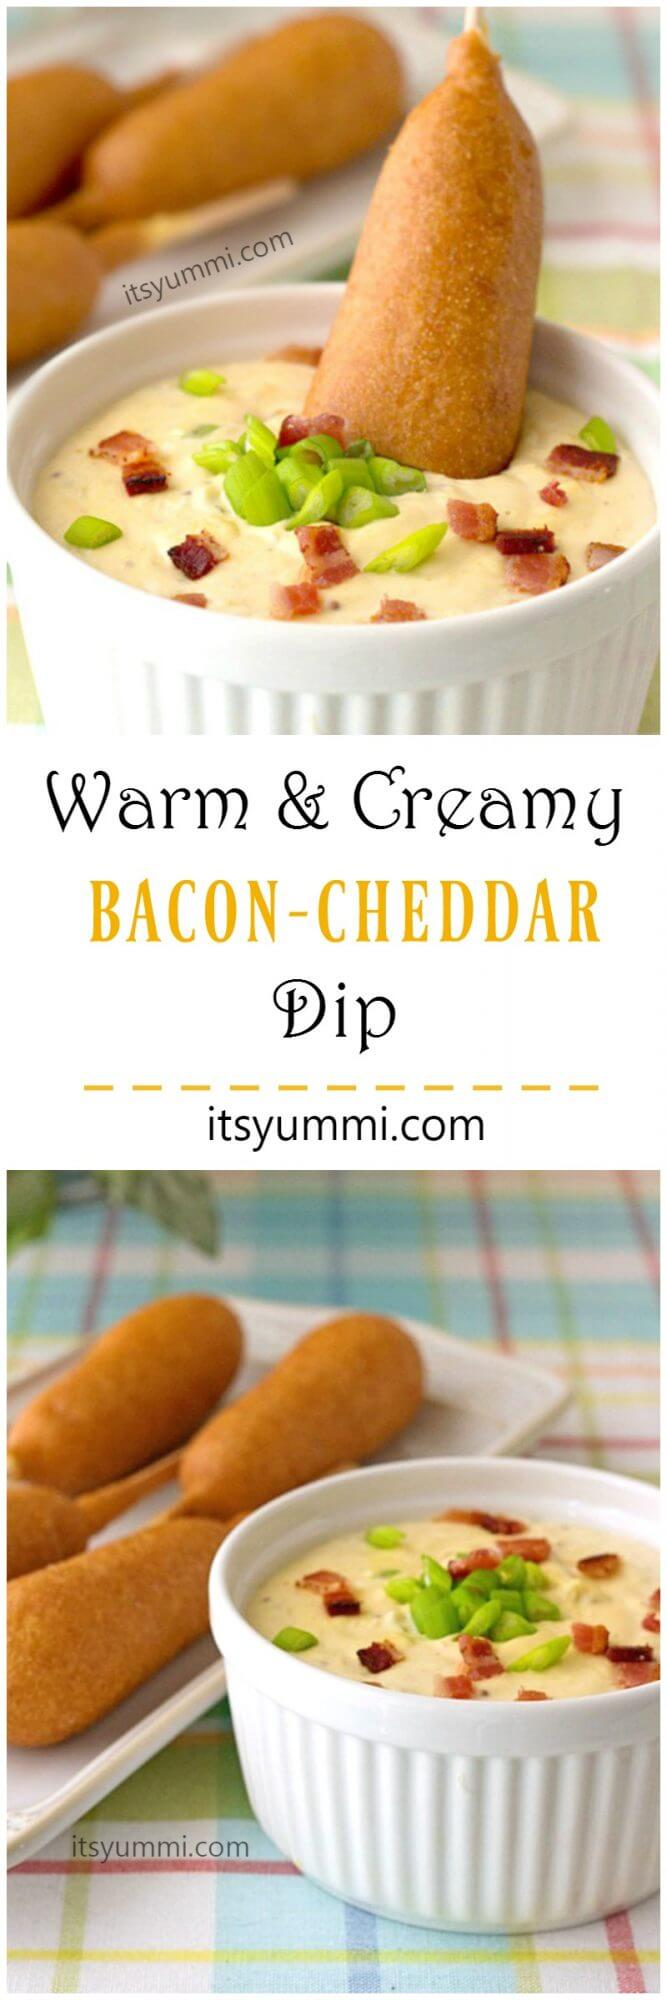 Warm bacon cheddar dip will be the hit of your game day parties! Takes just 5 minutes to make this snack dip. - Recipe on itsyummi.com